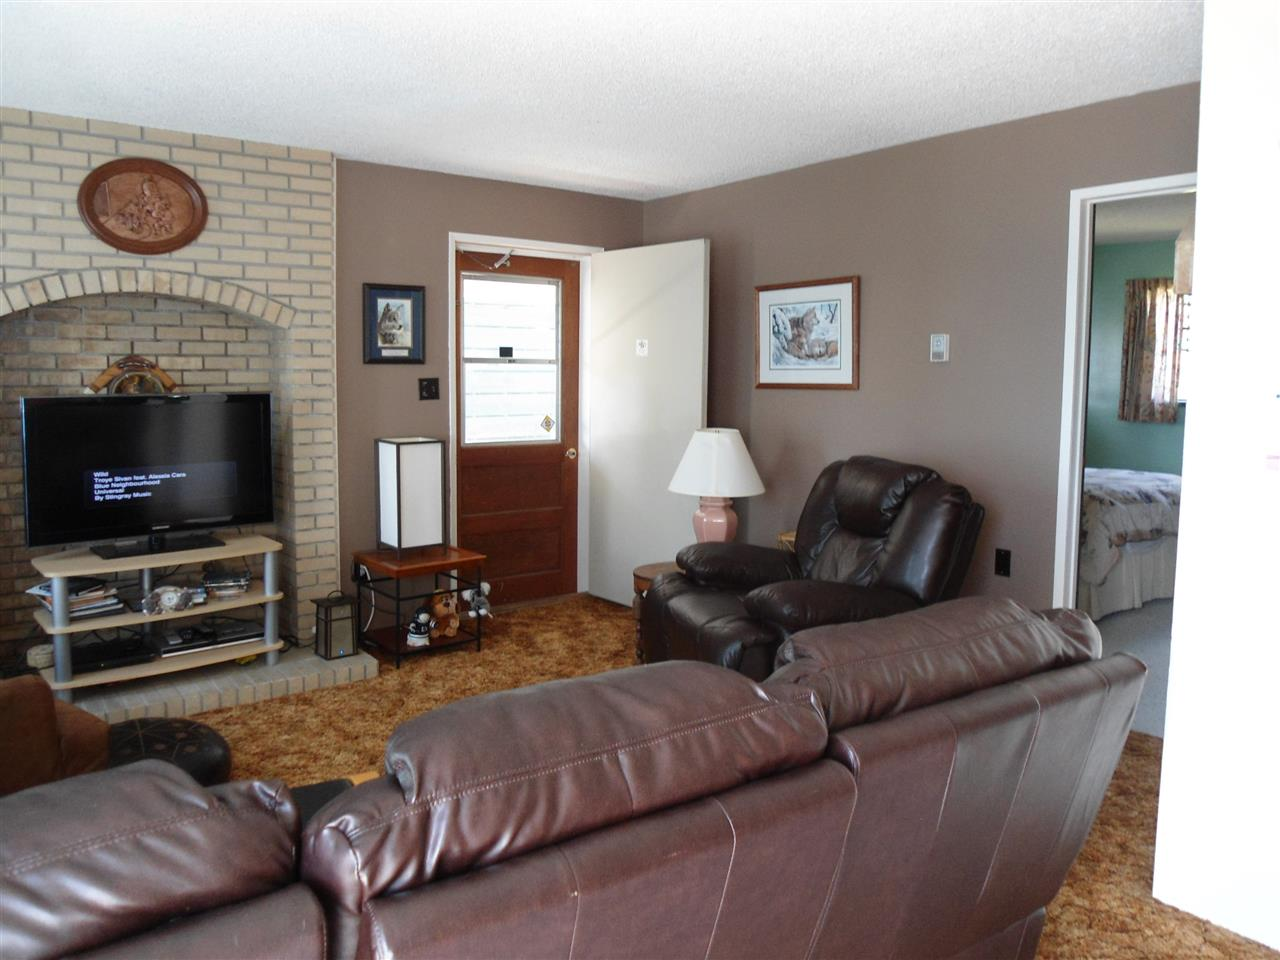 Photo 2: 51435 GUEST Road: Cluculz Lake House for sale (PG Rural West (Zone 77))  : MLS(r) # R2092121